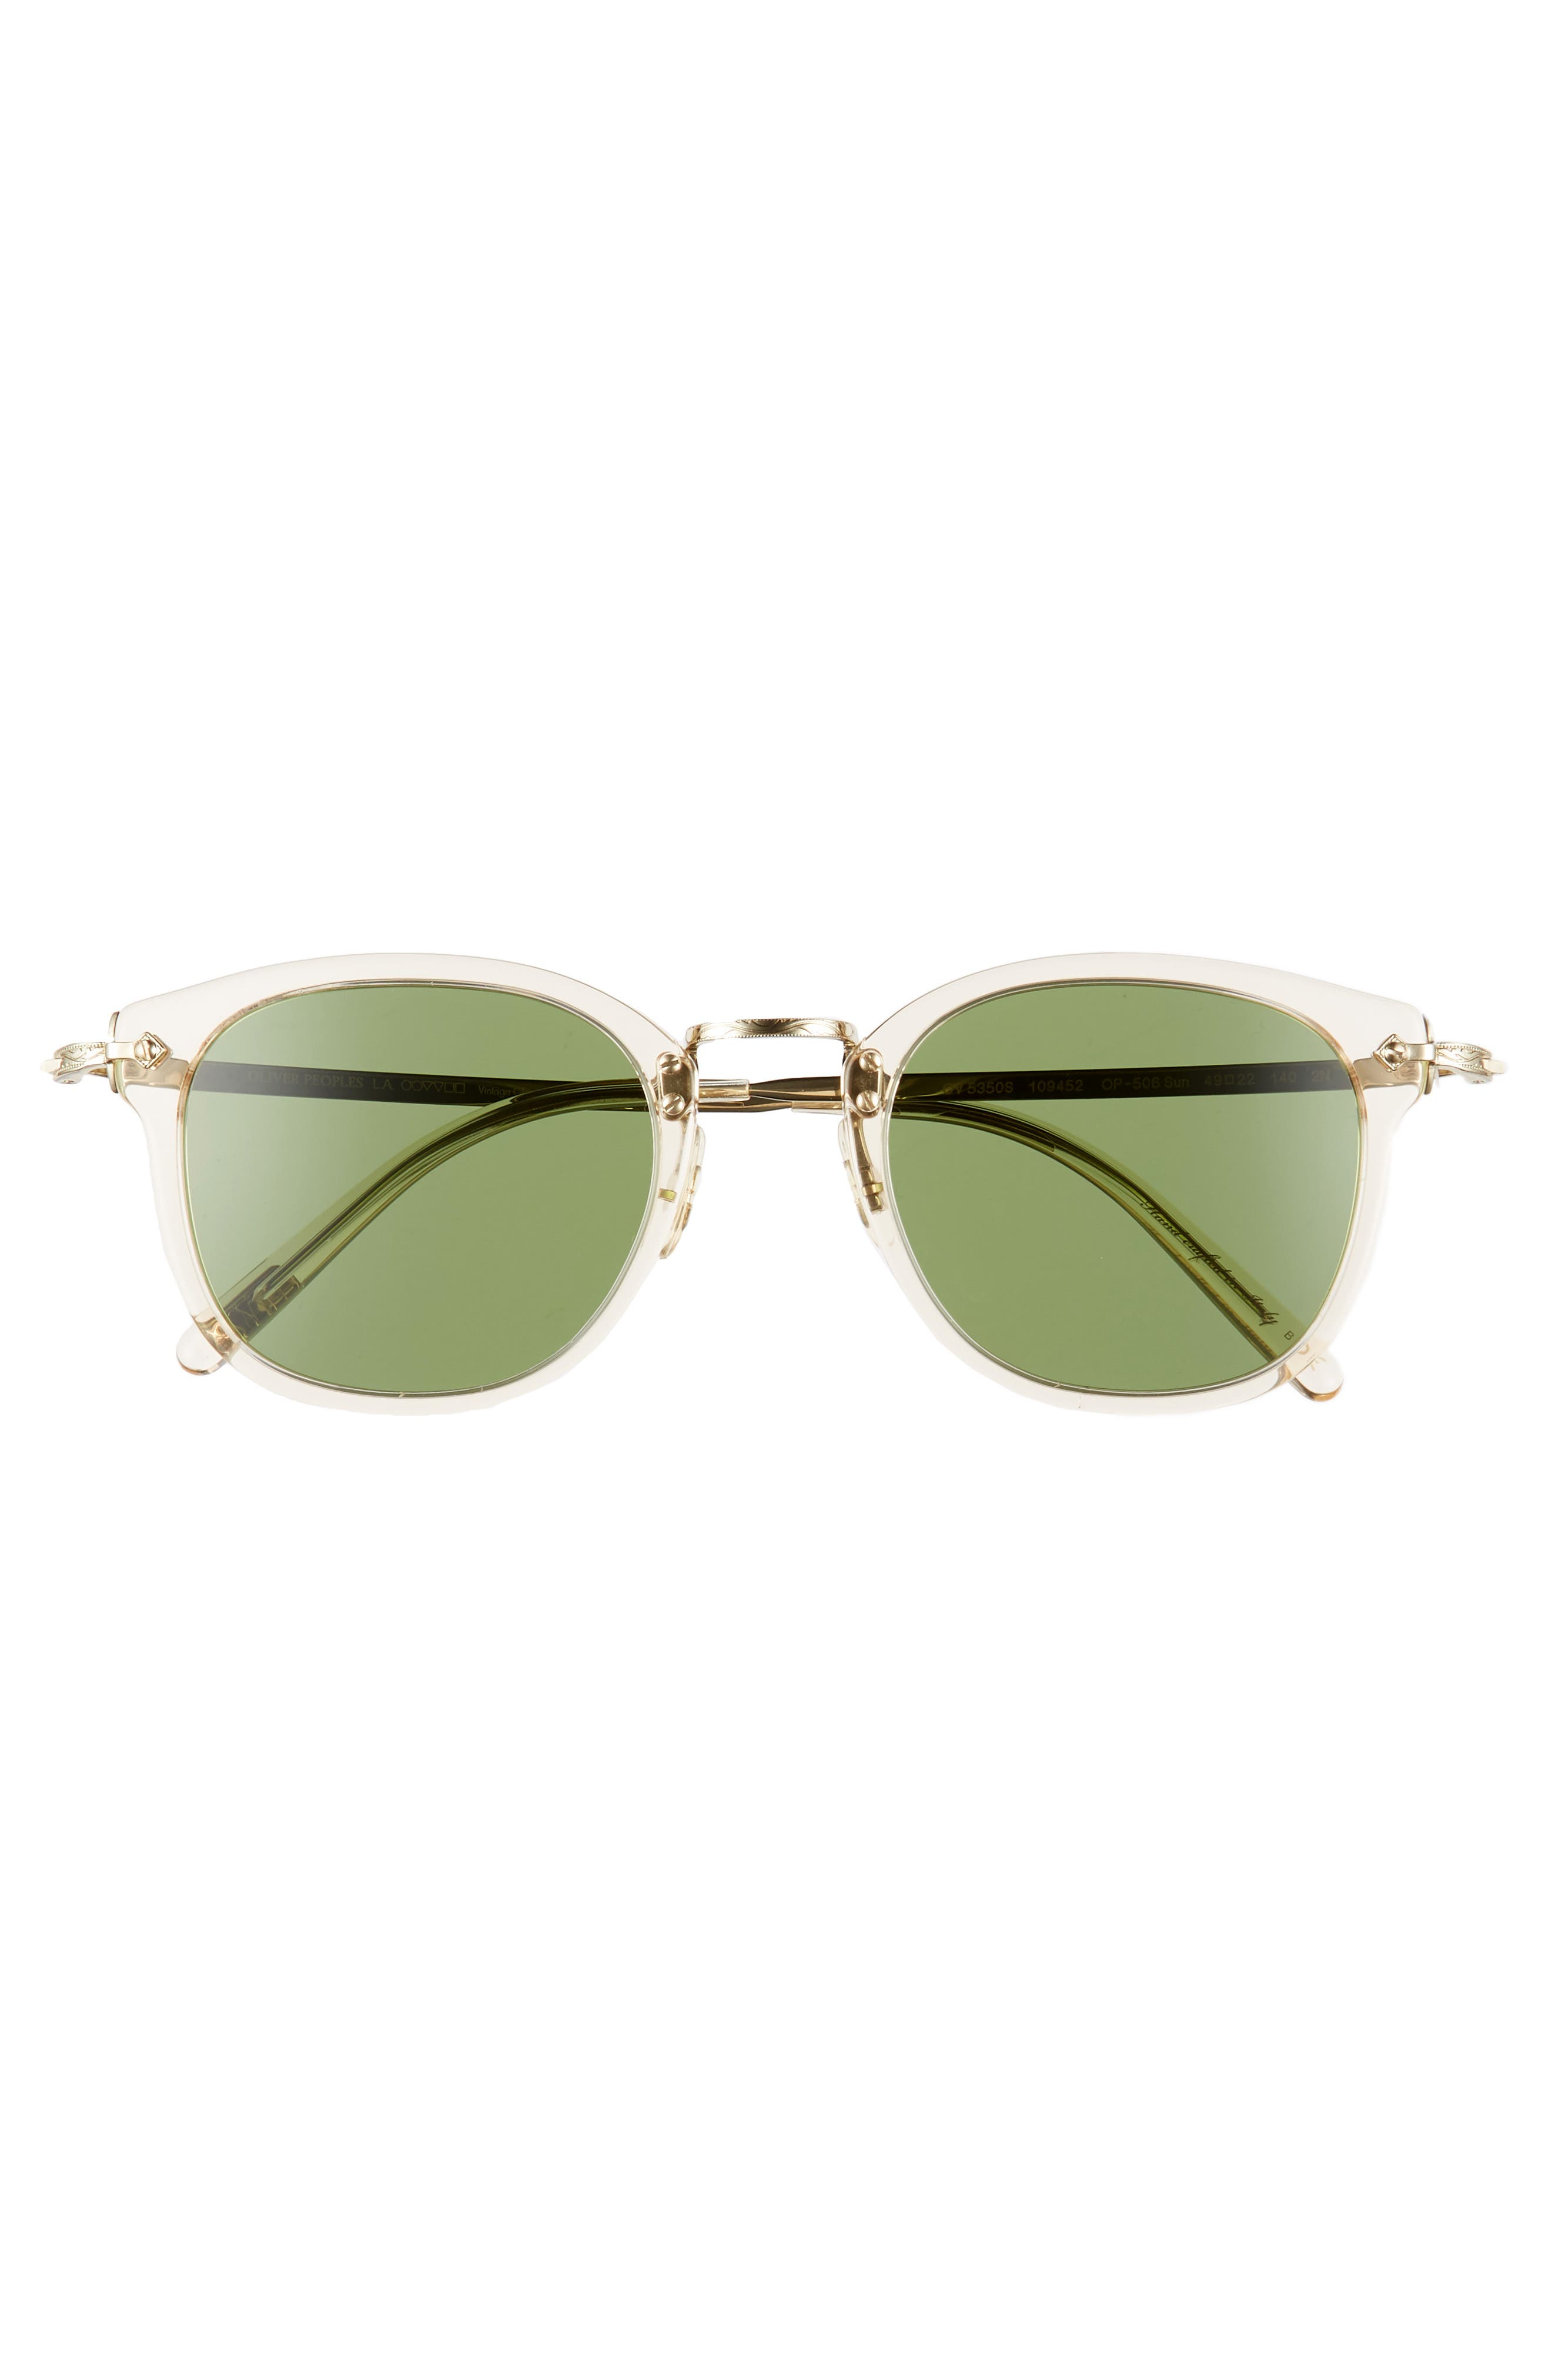 49mm Round Sunglasses,                             Alternate thumbnail 3, color,                             BUFF